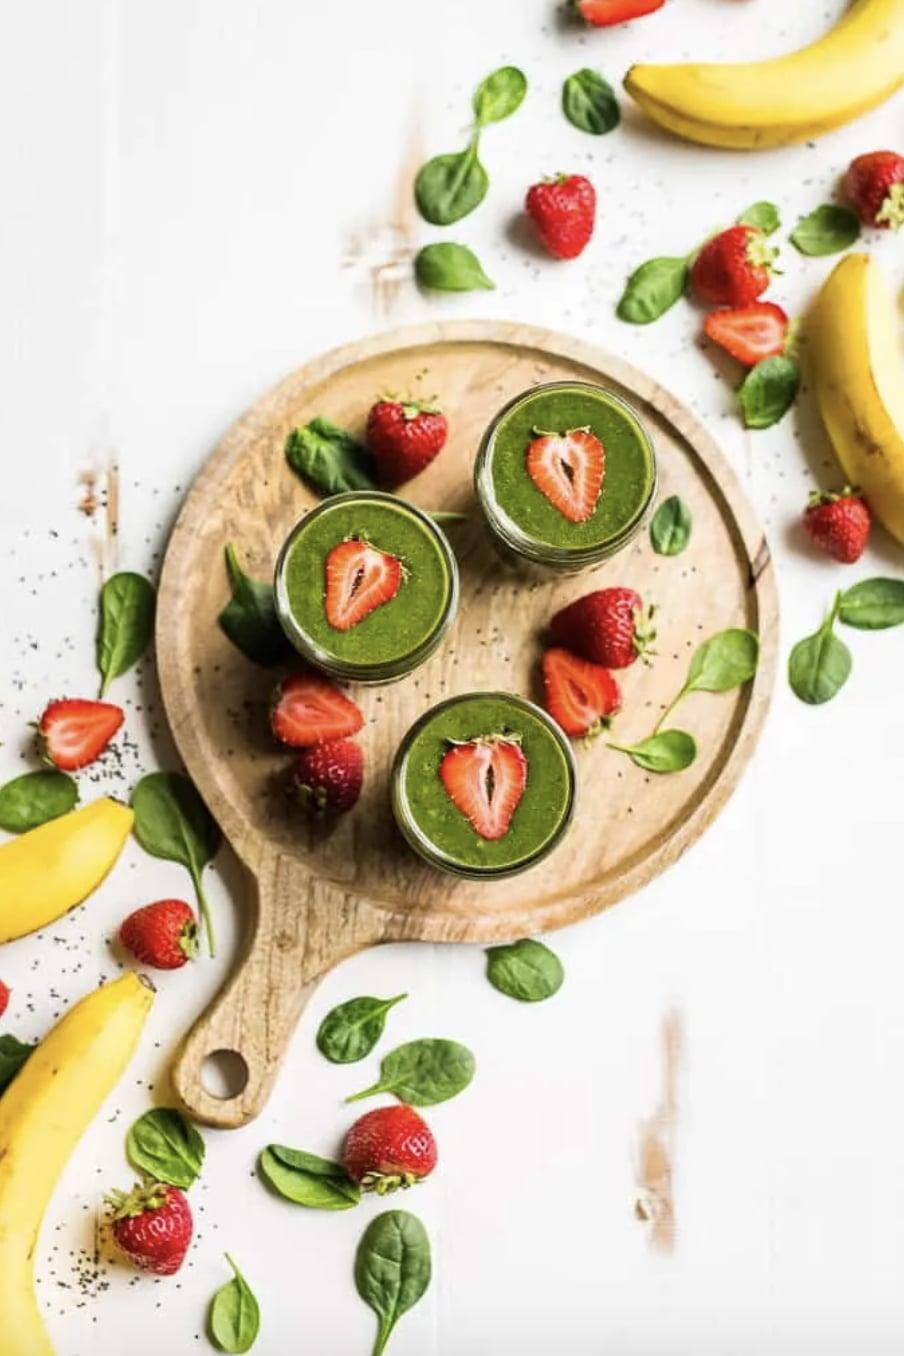 """<p>Get your daily dose of nutrients in one sitting when you make this green smoothie. Feel free to add as much or as little spinach as you want - the strawberries make it taste supersweet!</p> <p><strong>Get the recipe:</strong> <a href=""""https://getinspiredeveryday.com/food/strawberry-banana-green-smoothie/"""" class=""""link rapid-noclick-resp"""" rel=""""nofollow noopener"""" target=""""_blank"""" data-ylk=""""slk:strawberry banana green smoothie"""">strawberry banana green smoothie</a></p>"""